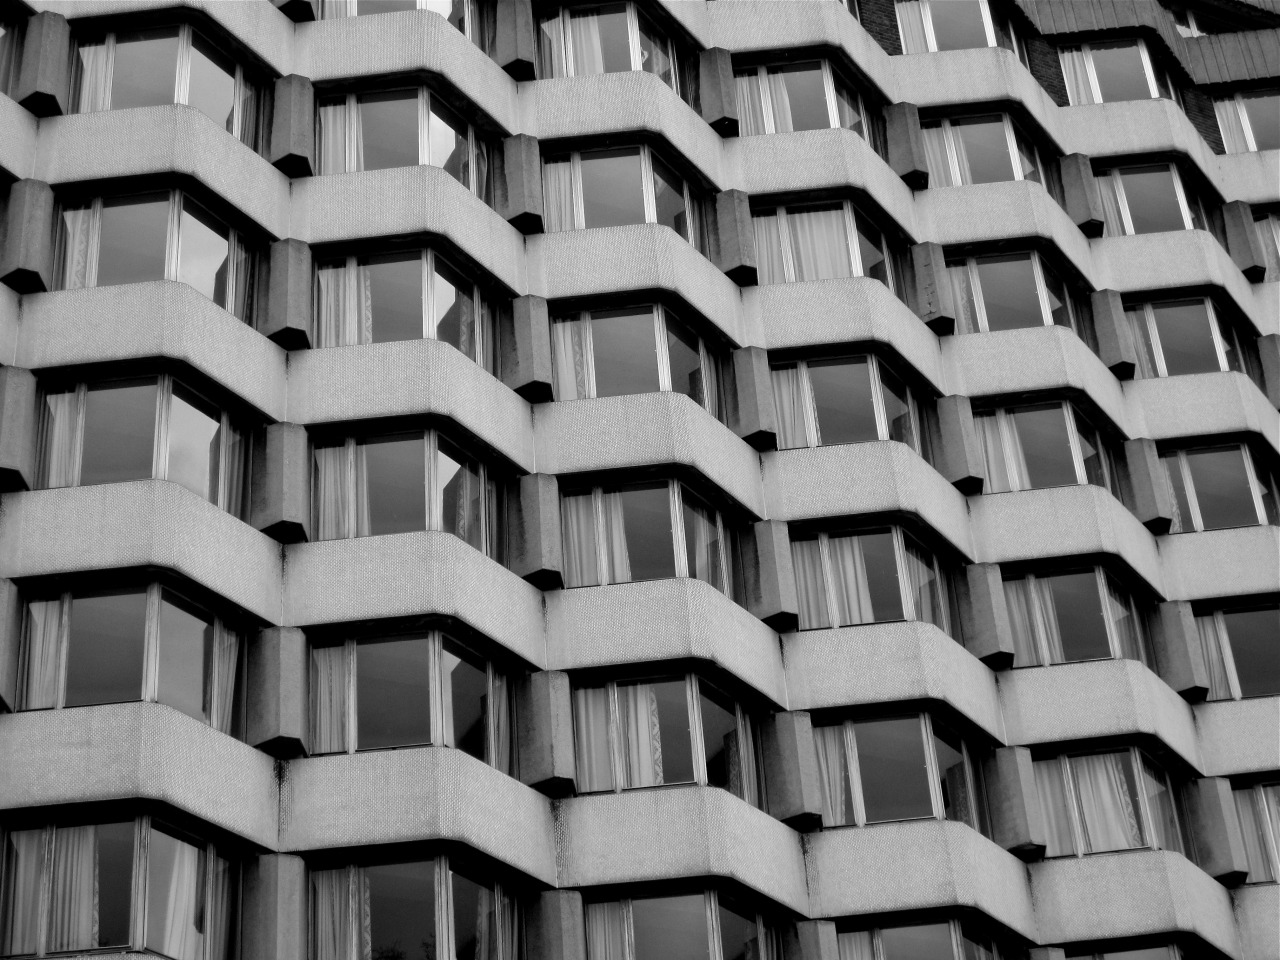 chrisjonesphotos:  monochrome building by Chris Jones